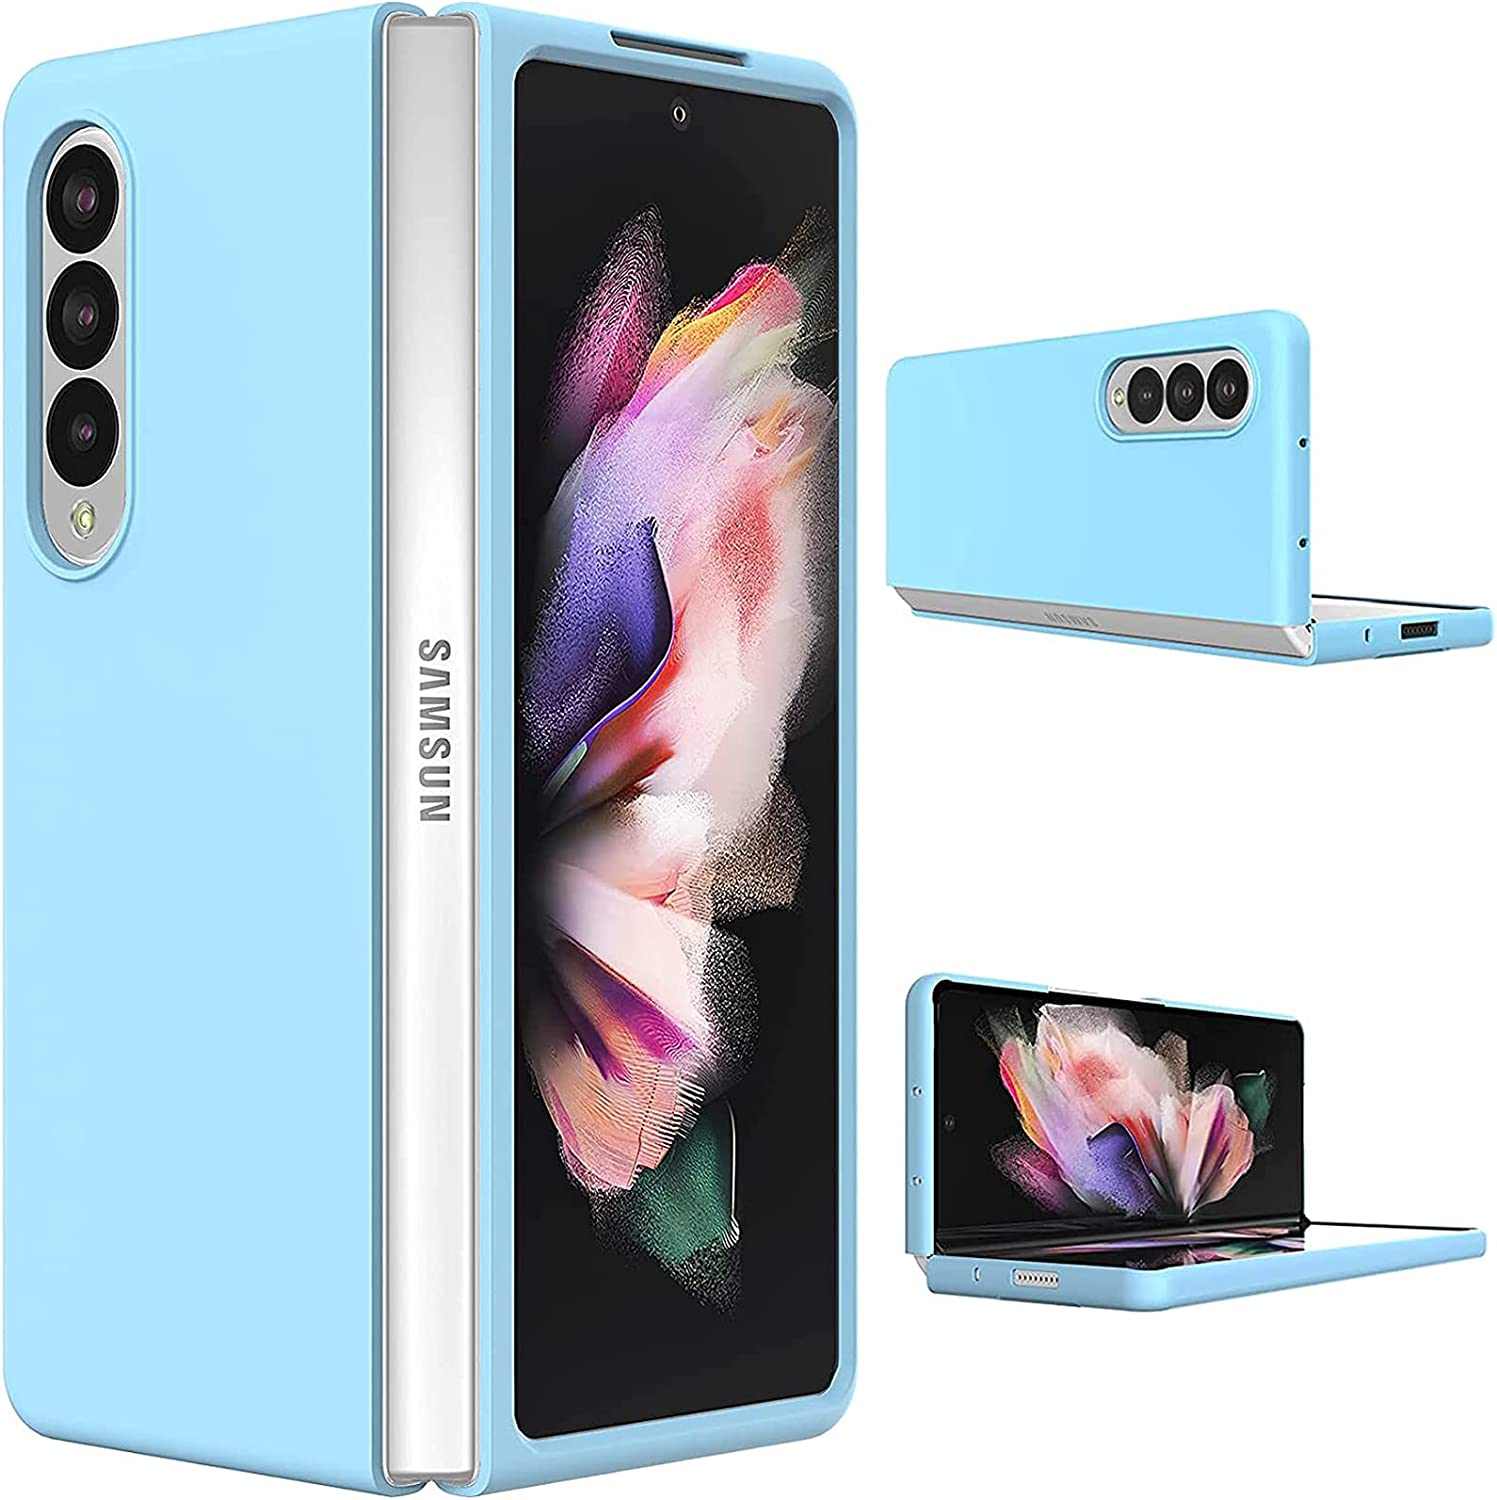 Slim Case for Samsung Galaxy Z Fold 3, Ultra Thin Lightweight Cover Durable Anti-Drop Wear-Resistant Hard PC Shell with Non-Slip Grip Protective Phone Defender for Z Galaxy Fold 3 5G 2021 - Blue